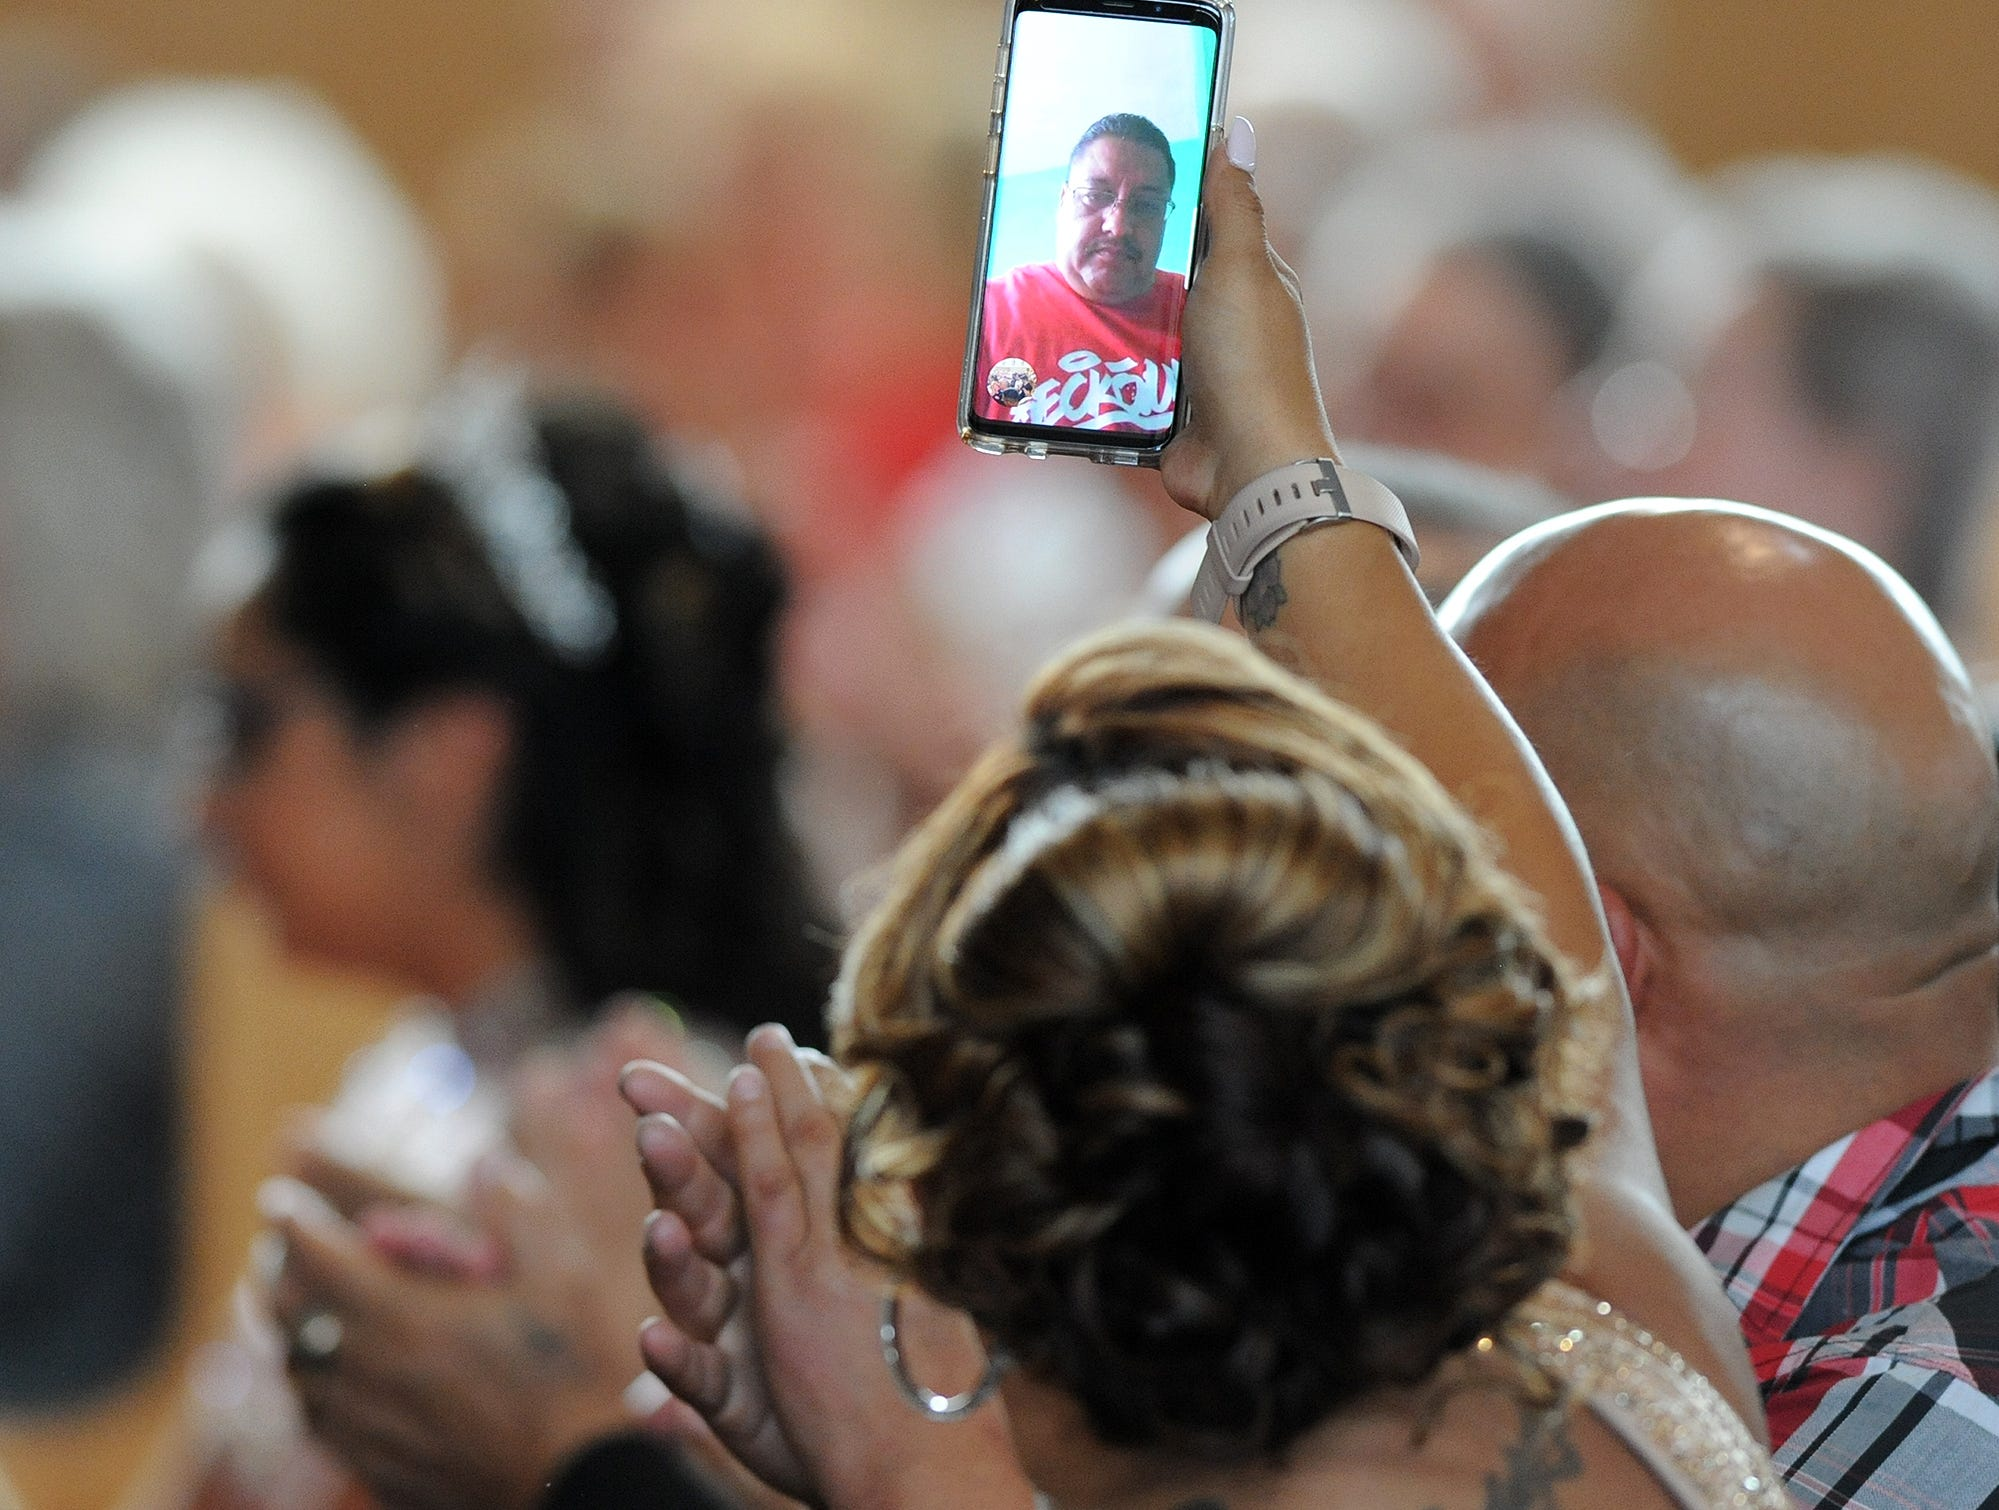 Cindy Garcia, holds up her cellphone, playing the Google Duo video calling app, so her husband, Jorge Garcia, to watch her quinceañera mass.